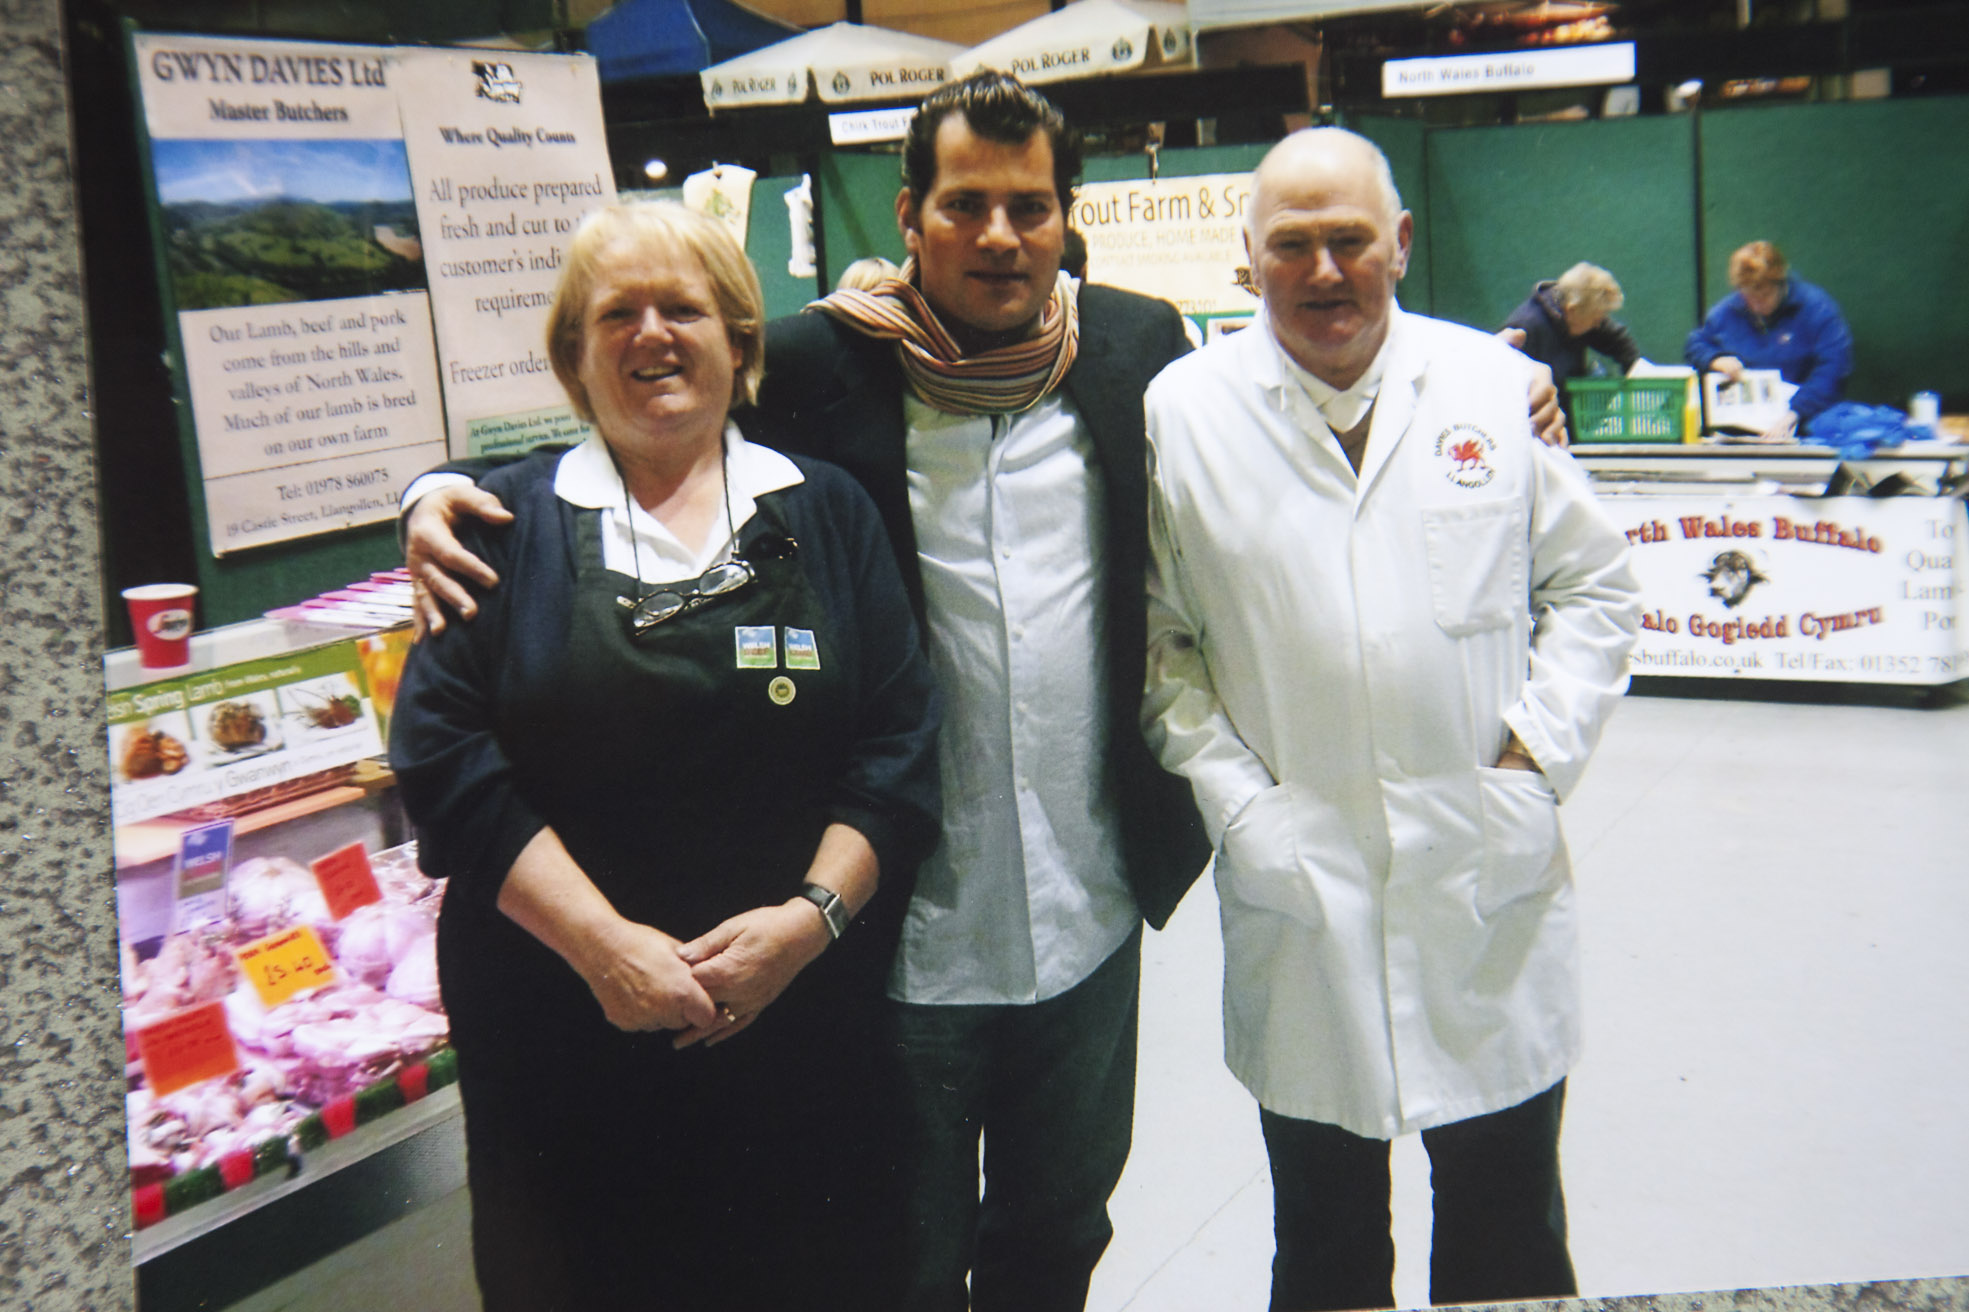 Gwyn and his late wife Heather at the Llangollen food festival a couple of years ago when they met Chef Ed Baines